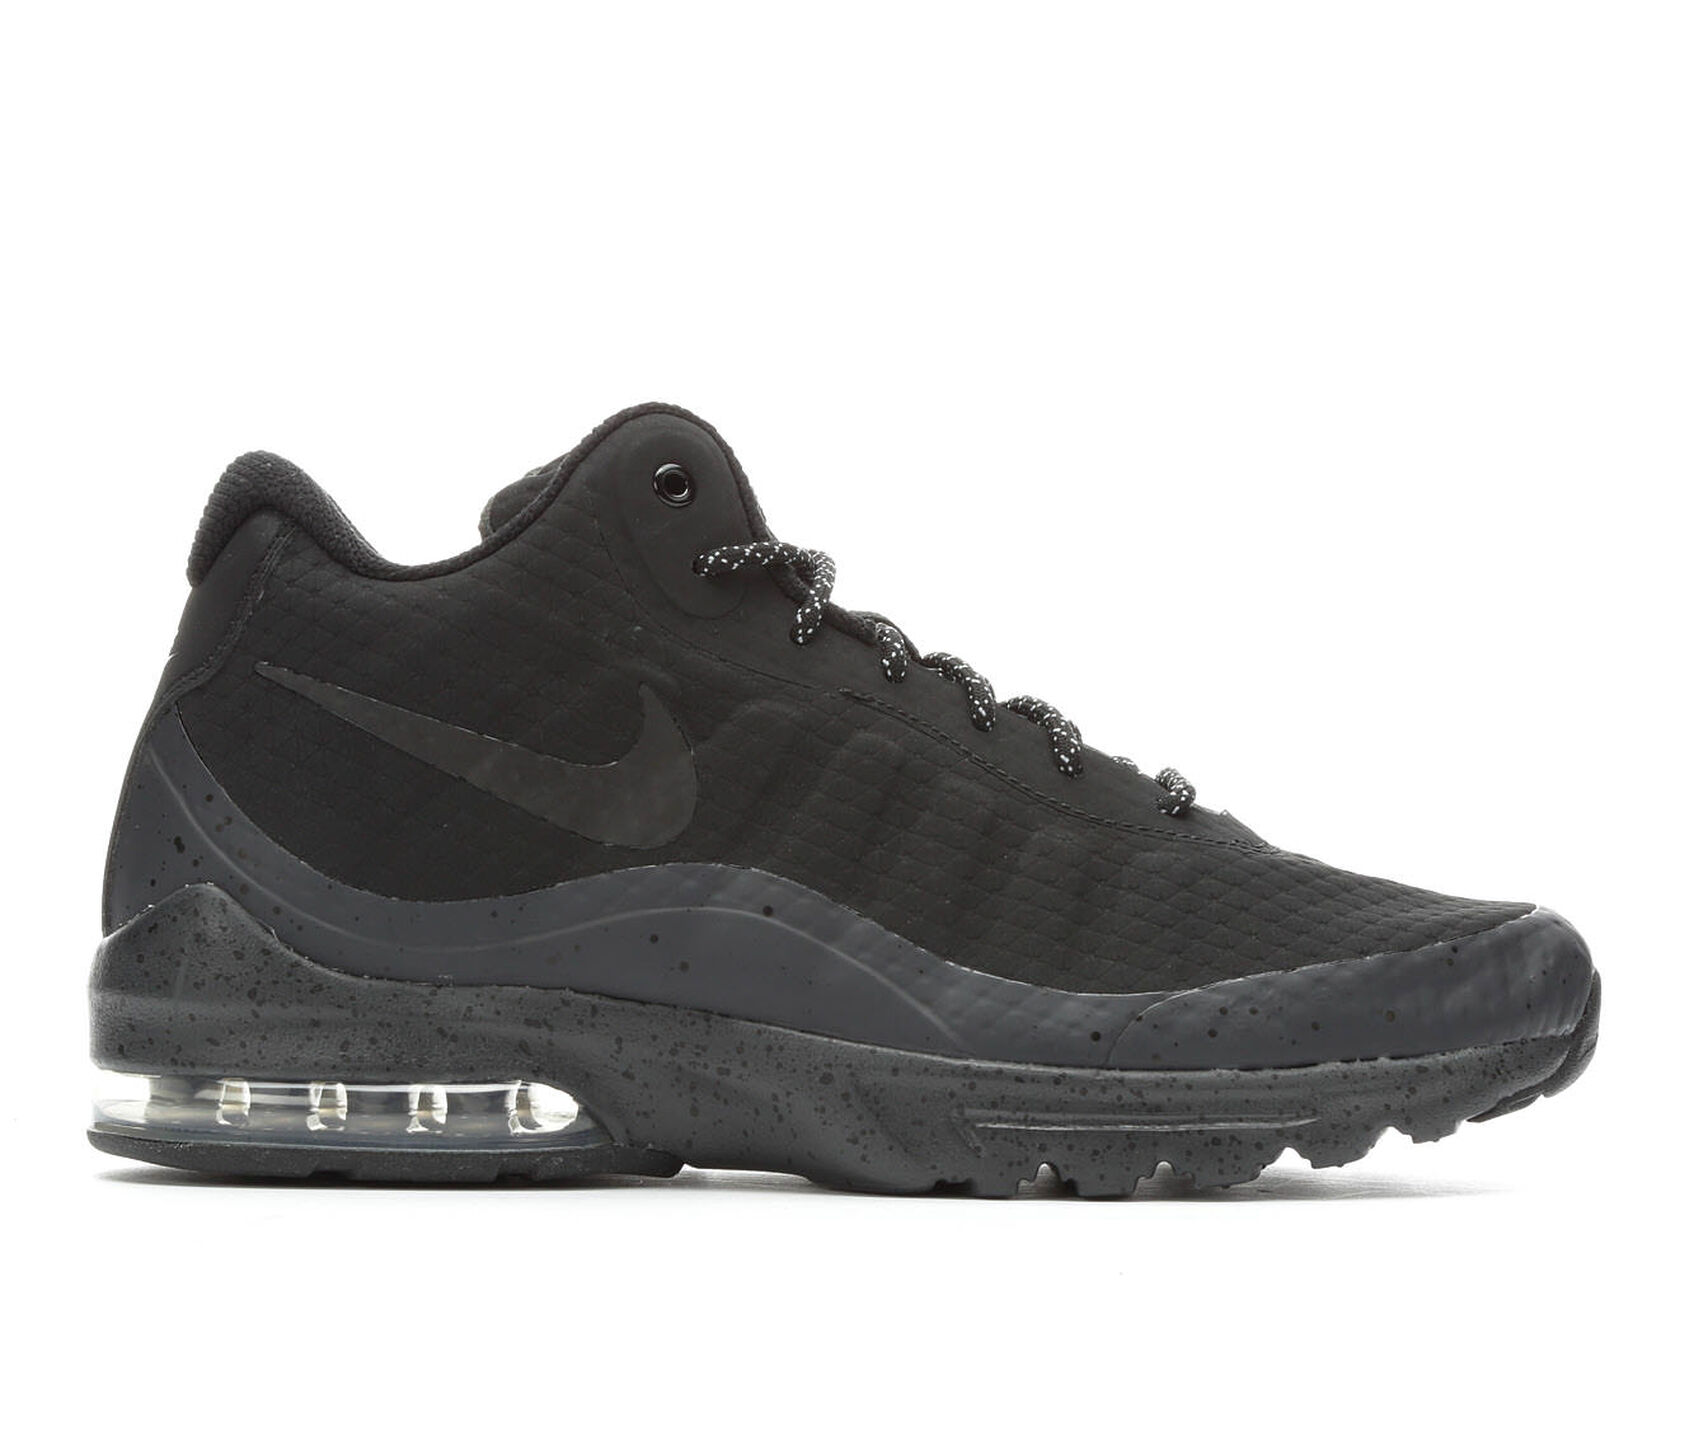 0b3d1eff65 Men's Nike Air Max Invigor Mid High Top Athletic Sneakers | Shoe Carnival